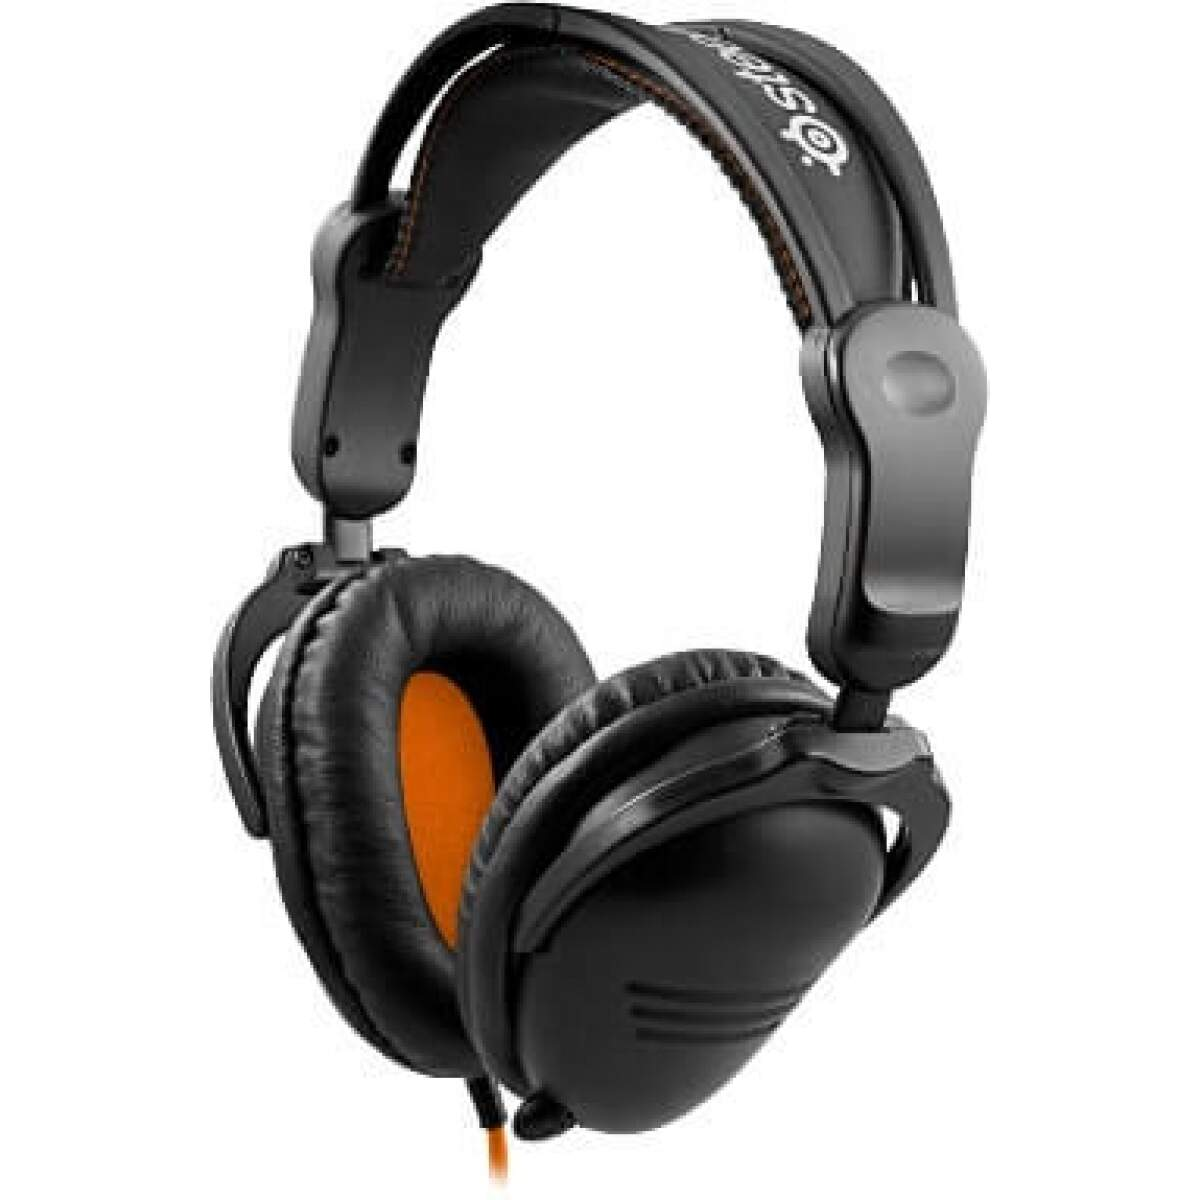 Headset Steelseries 3HV2 - Ps4